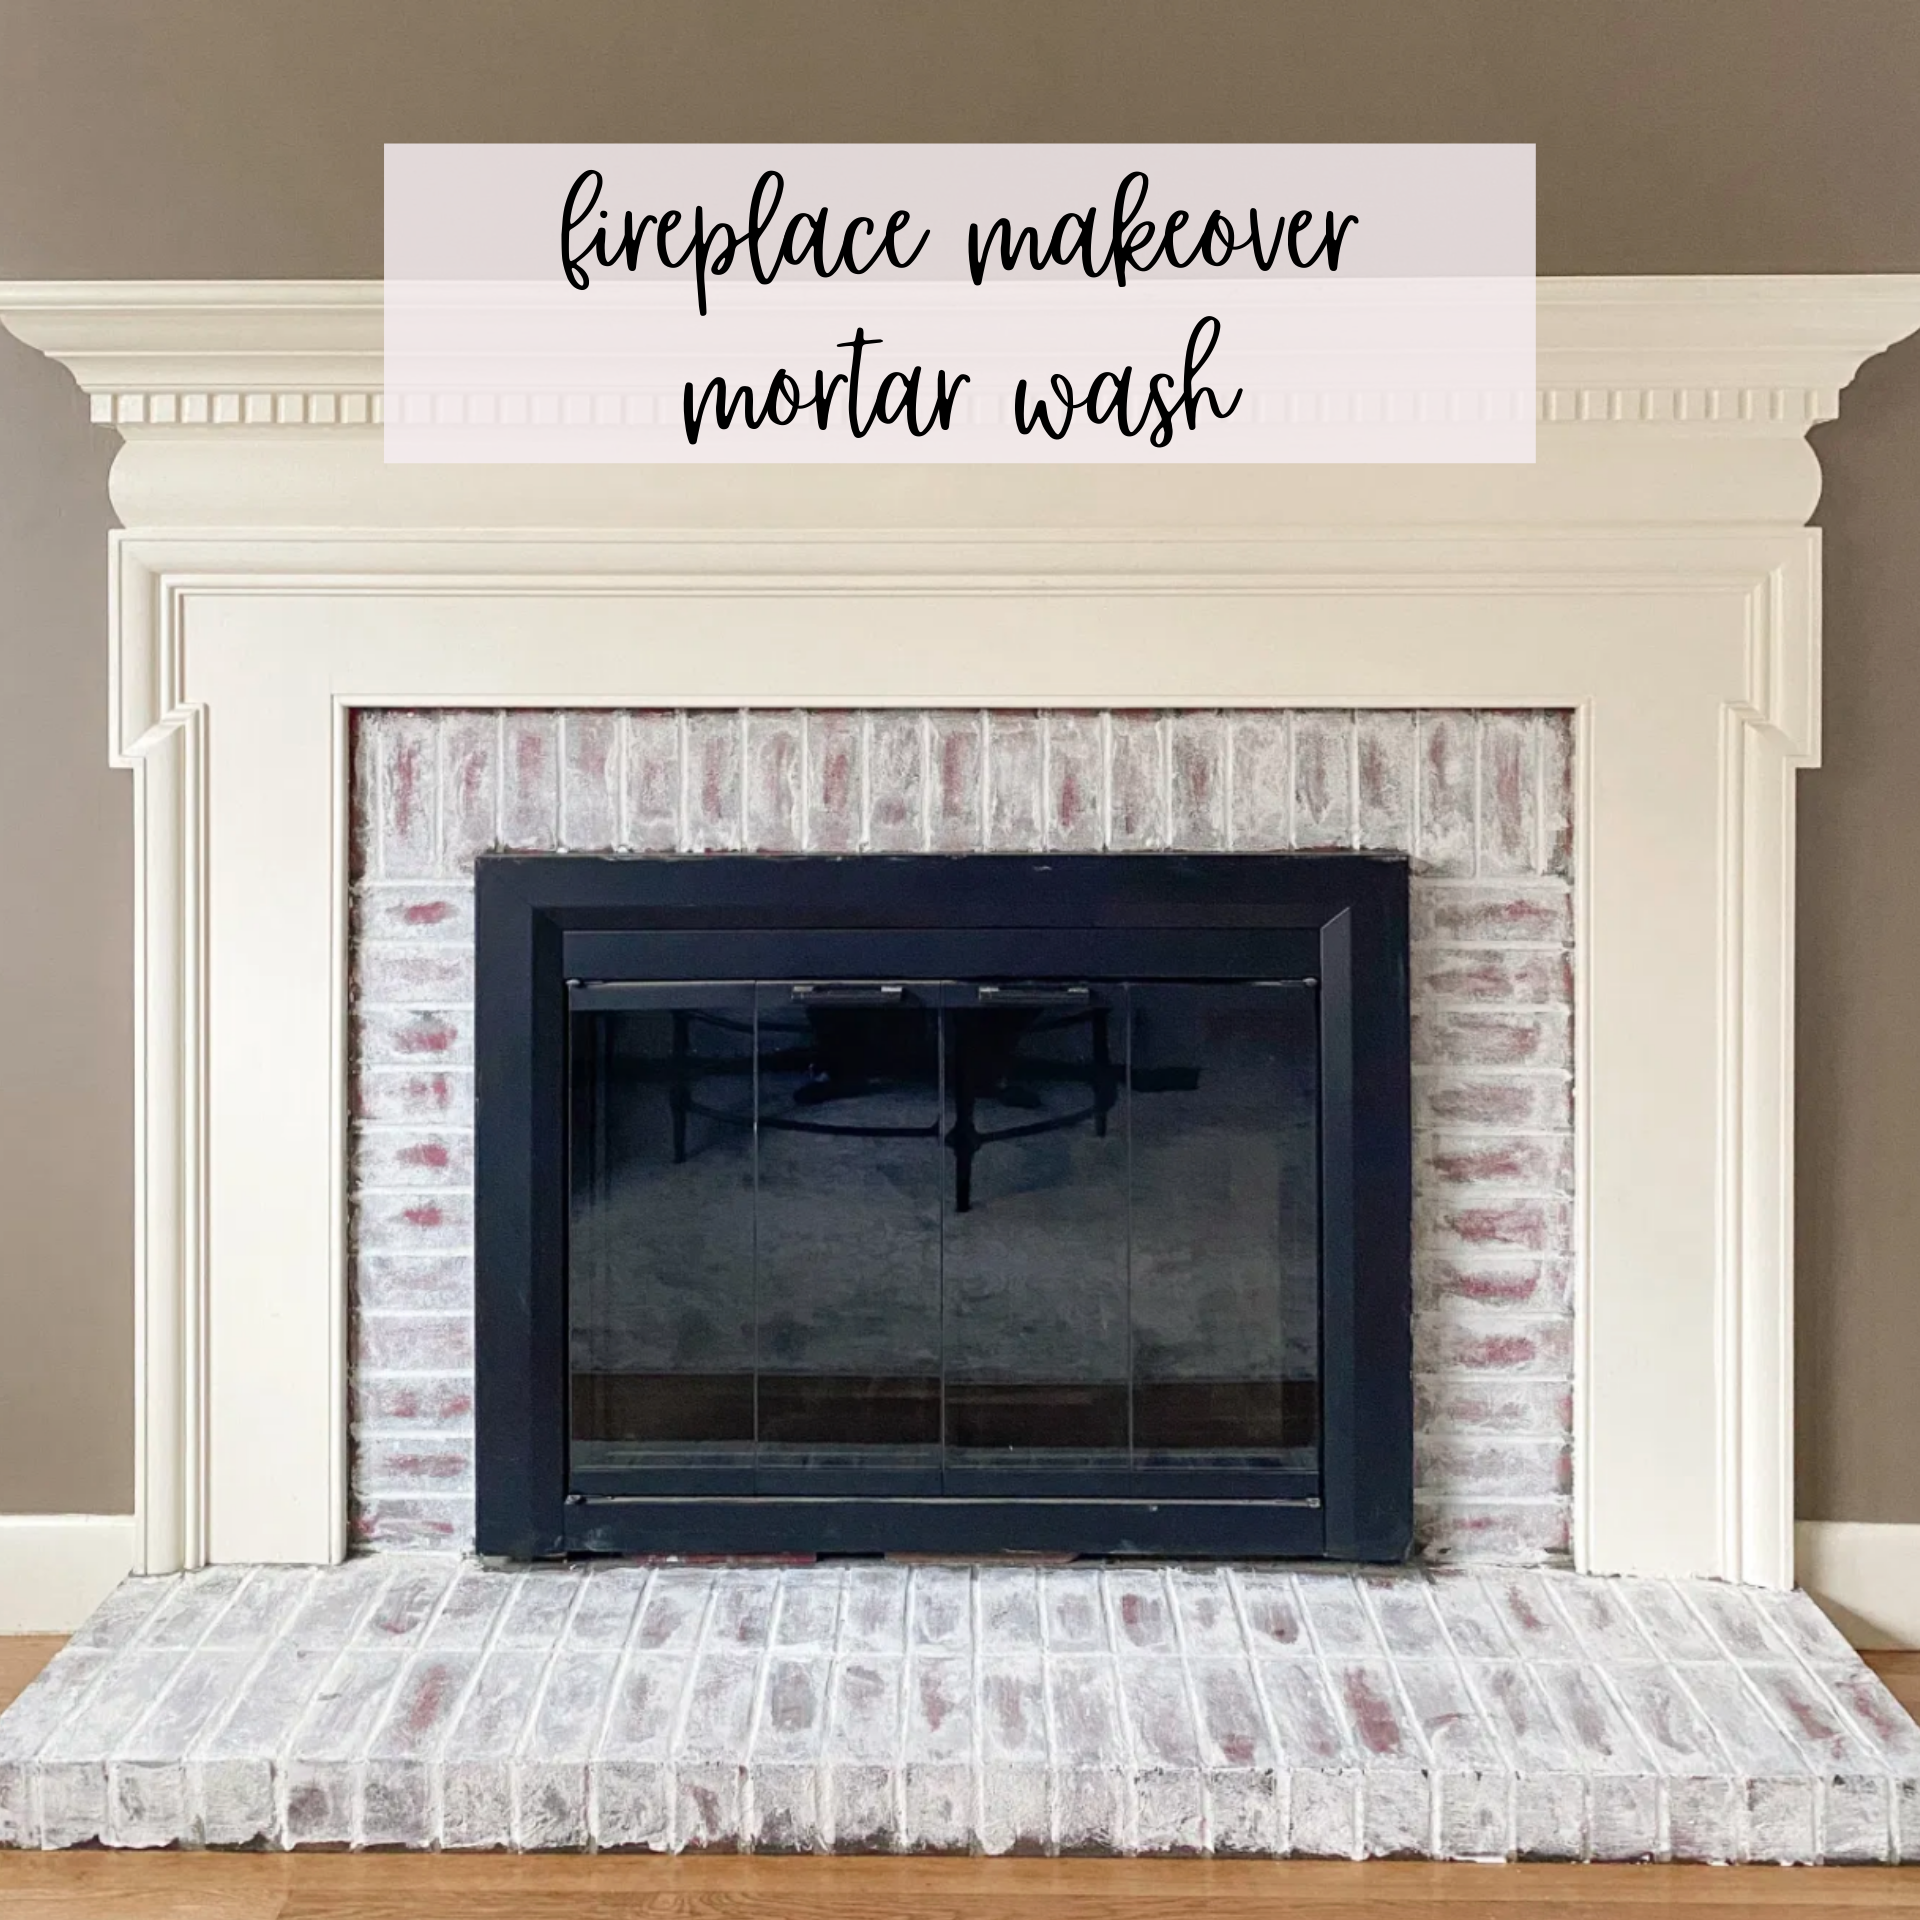 Fireplace Makeover - Mortar Wash